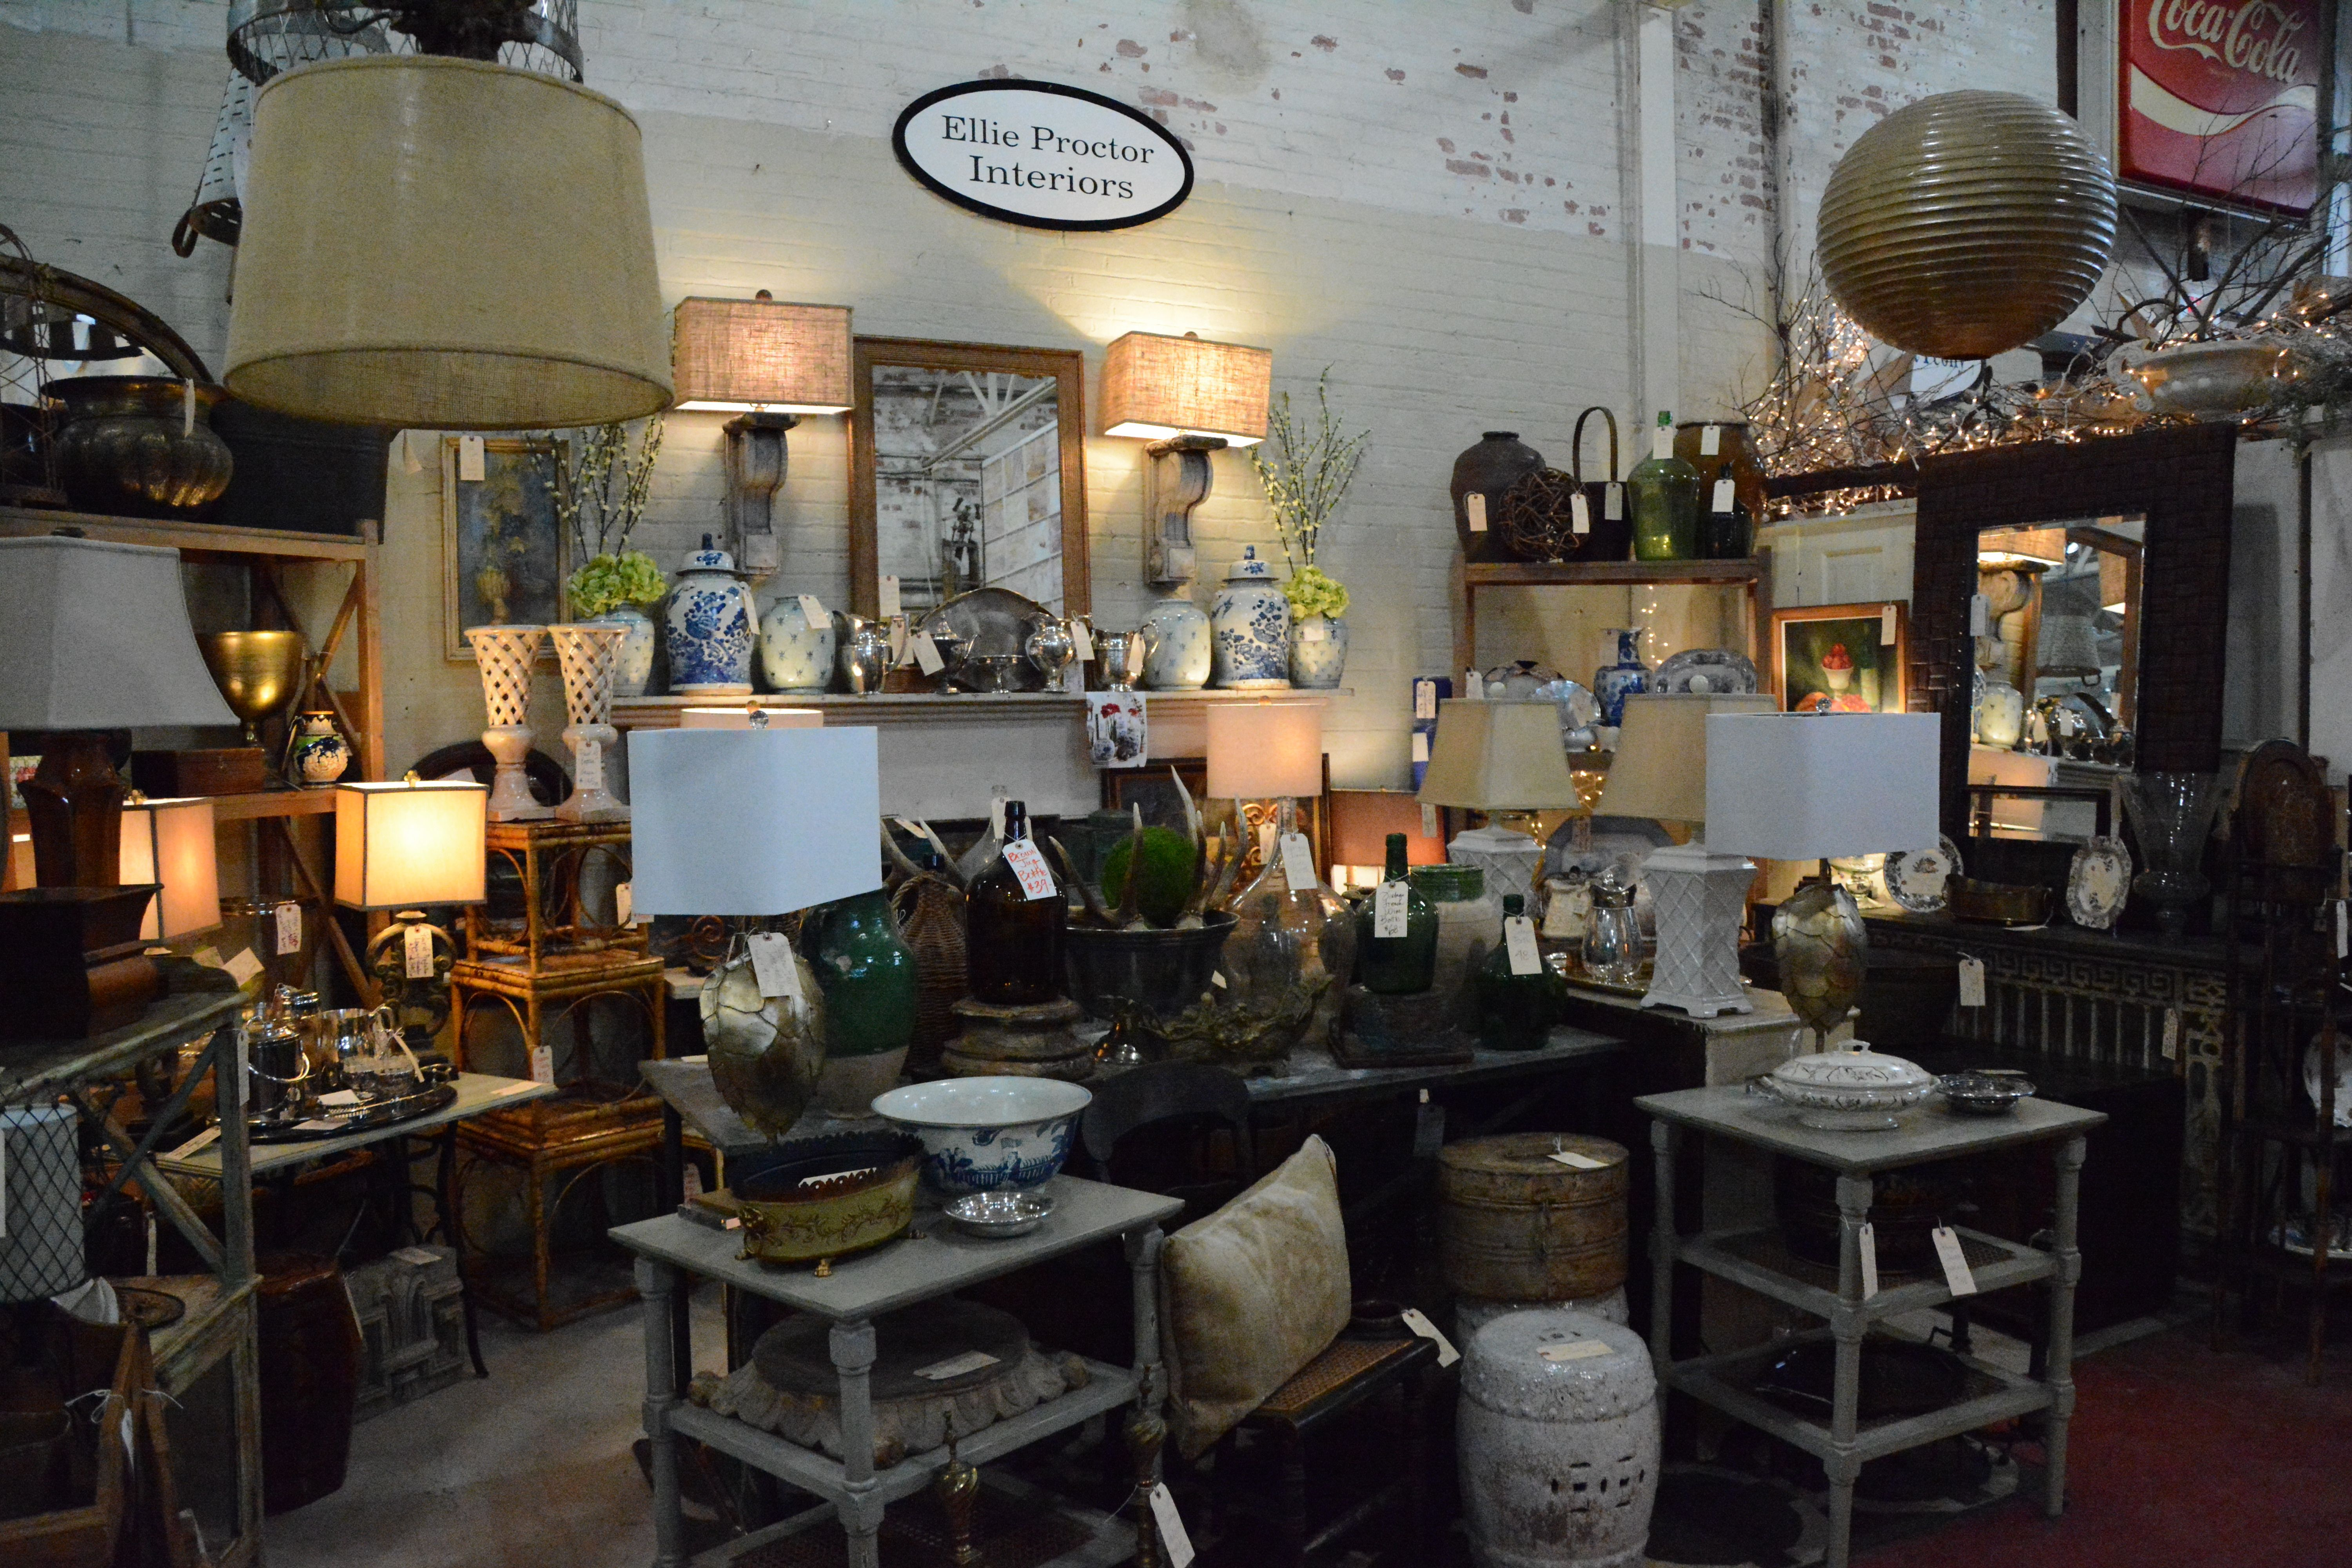 Ellie Proctor Interiors vendor booth at the Black Dog Salvage